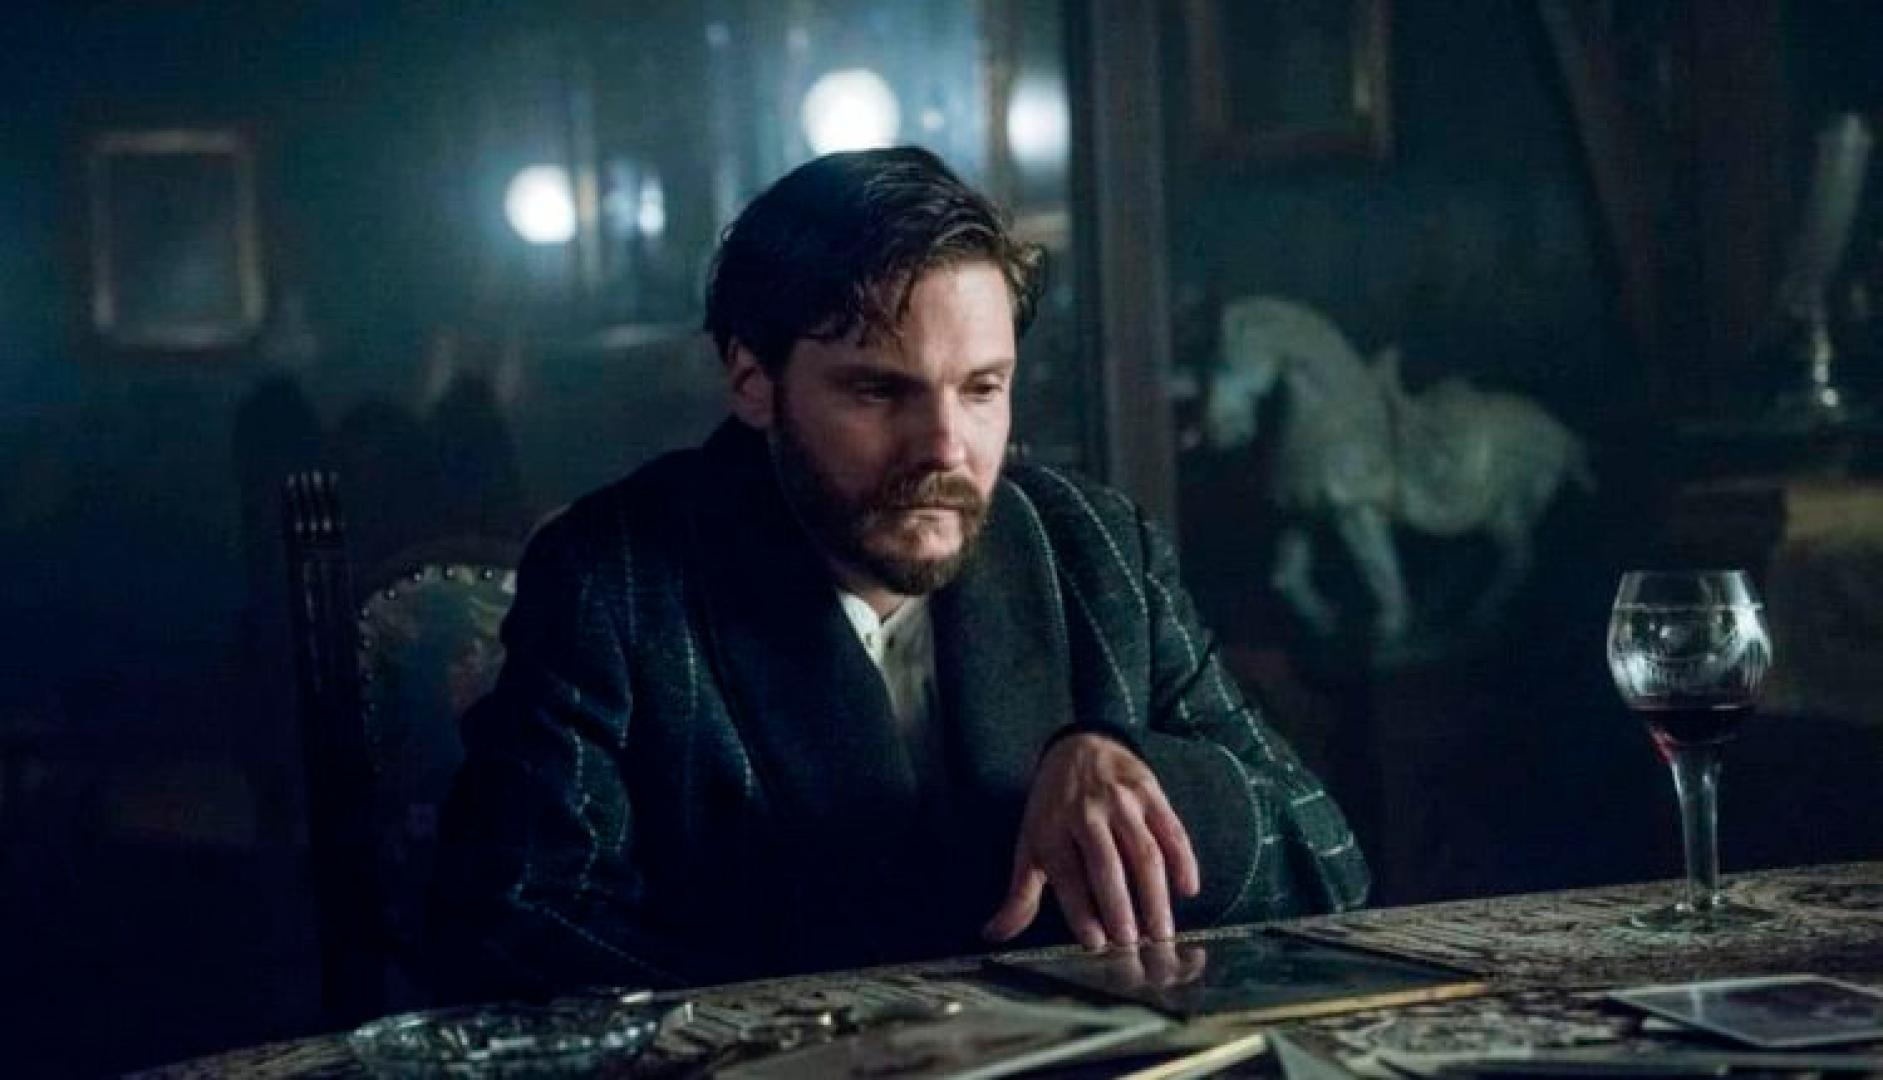 the_alienist1x10_1_kep